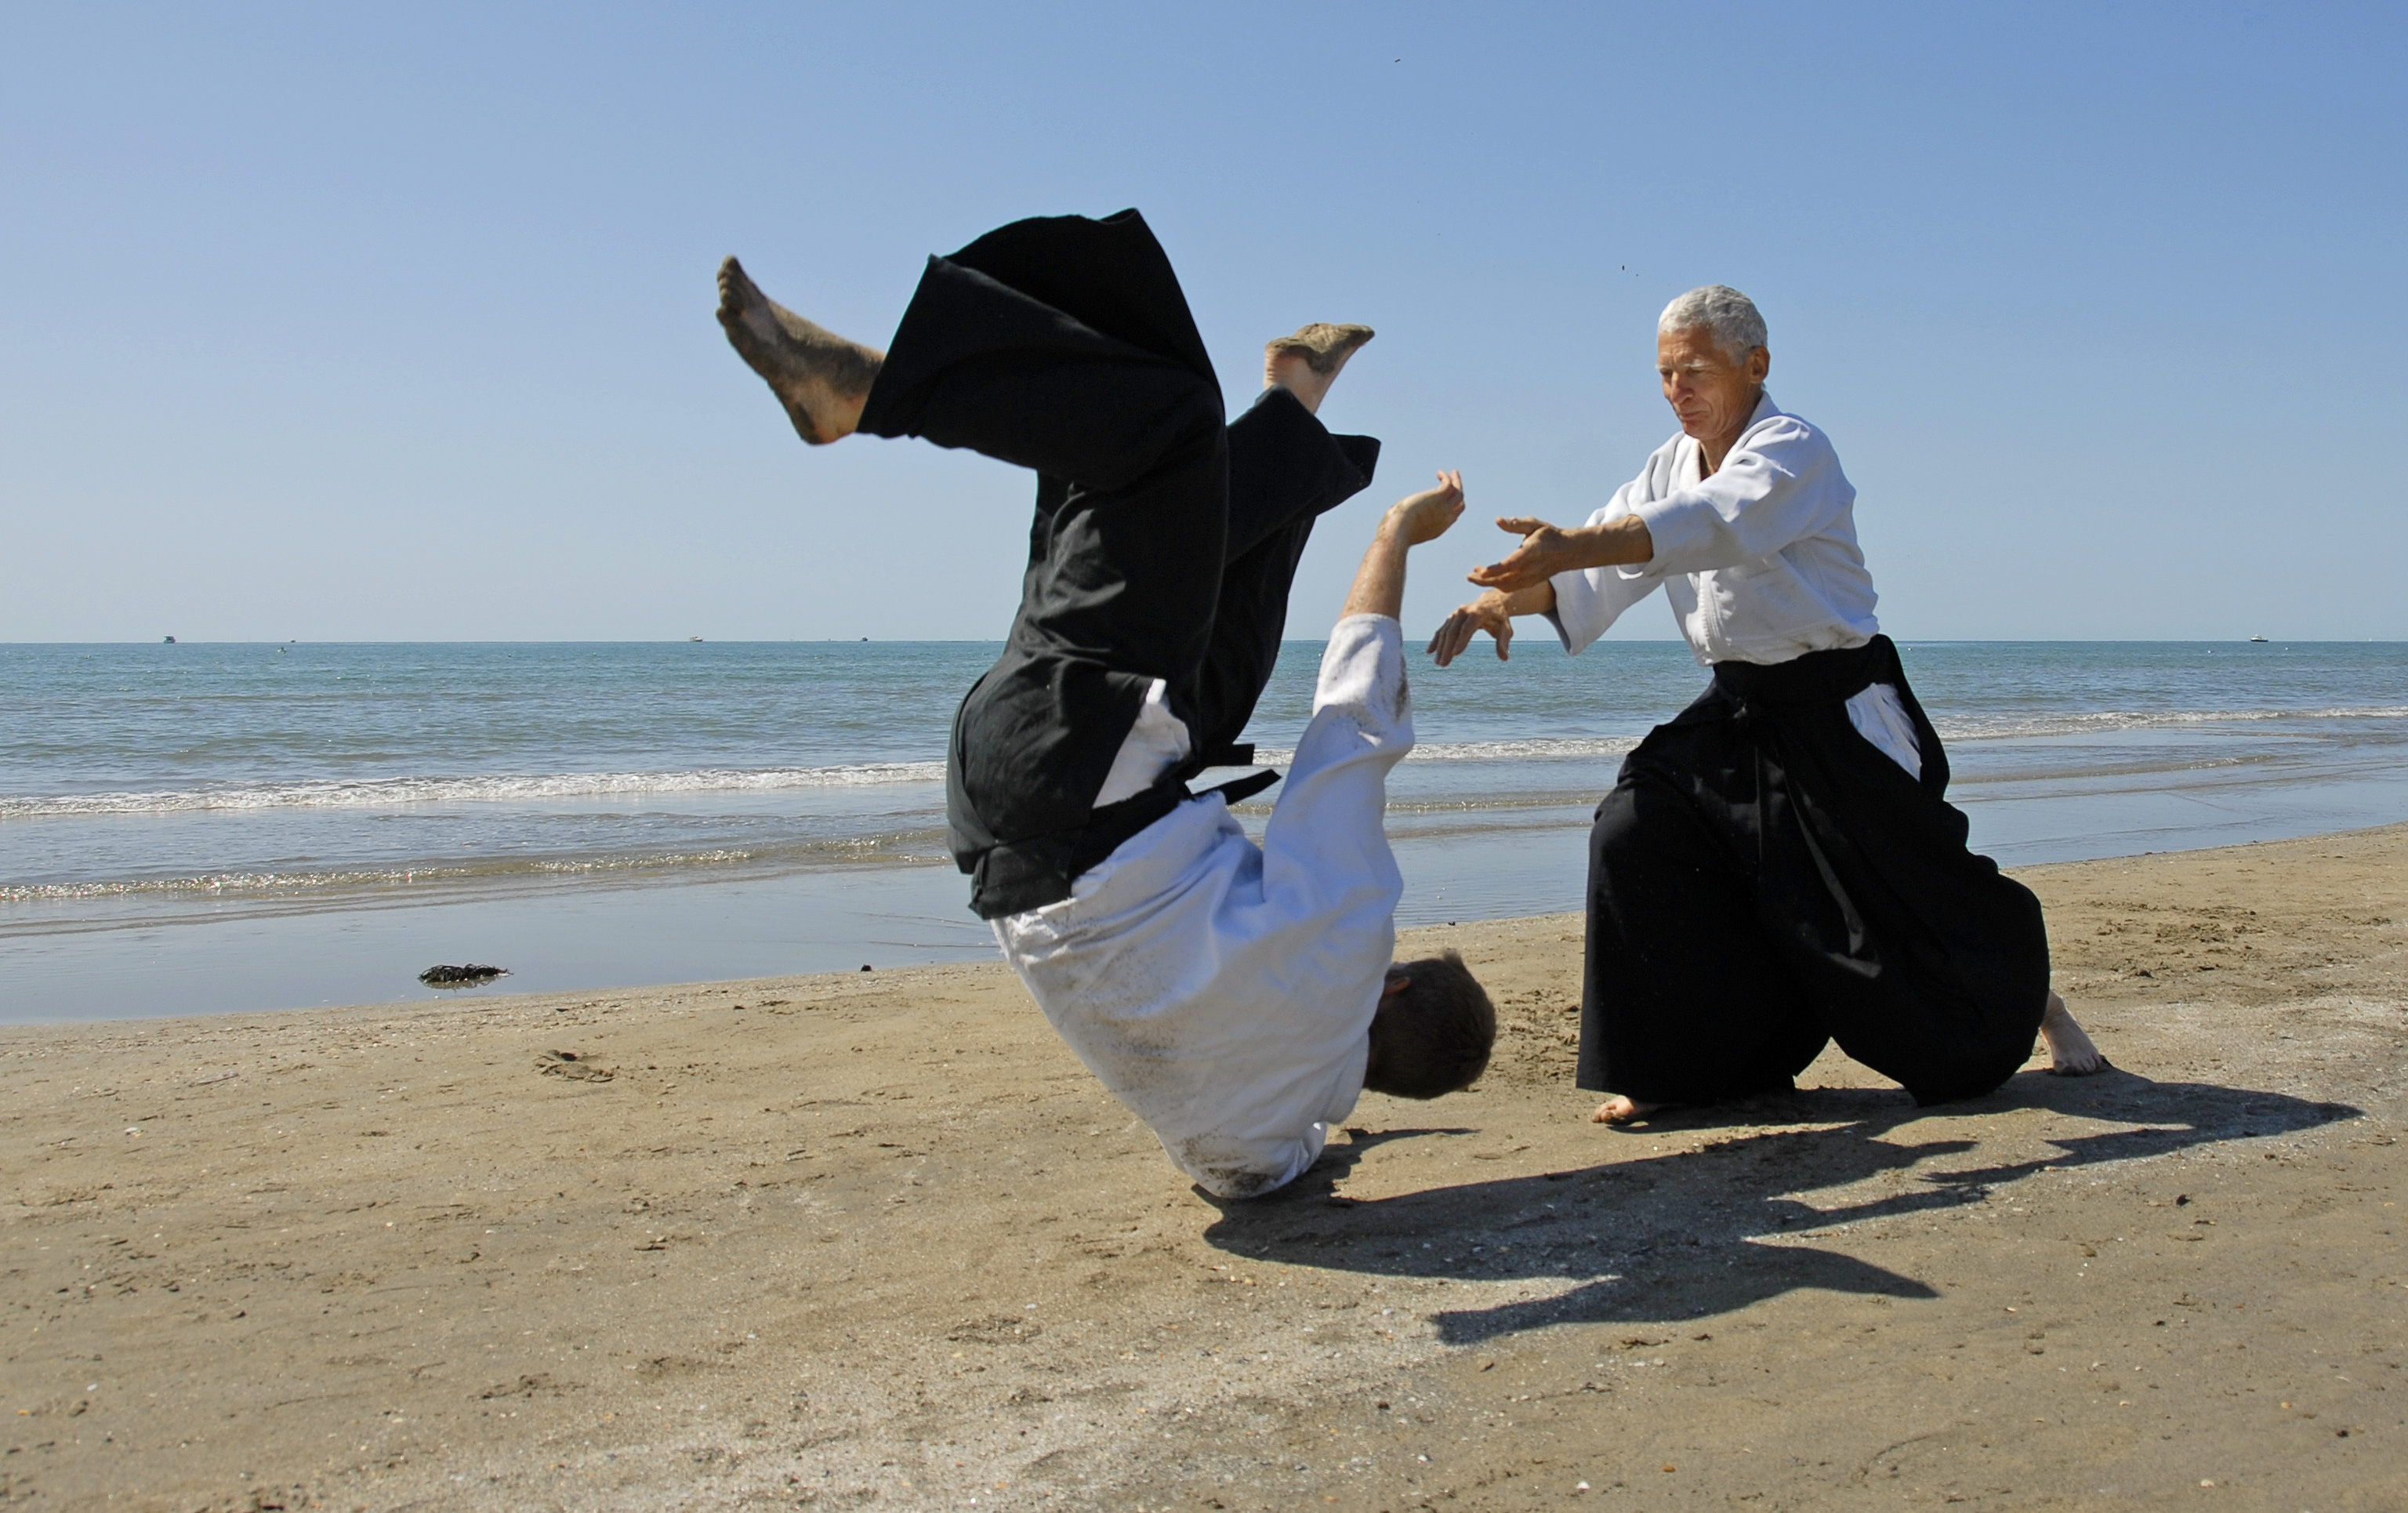 two adult men practicing aikido on the coast of a body of water